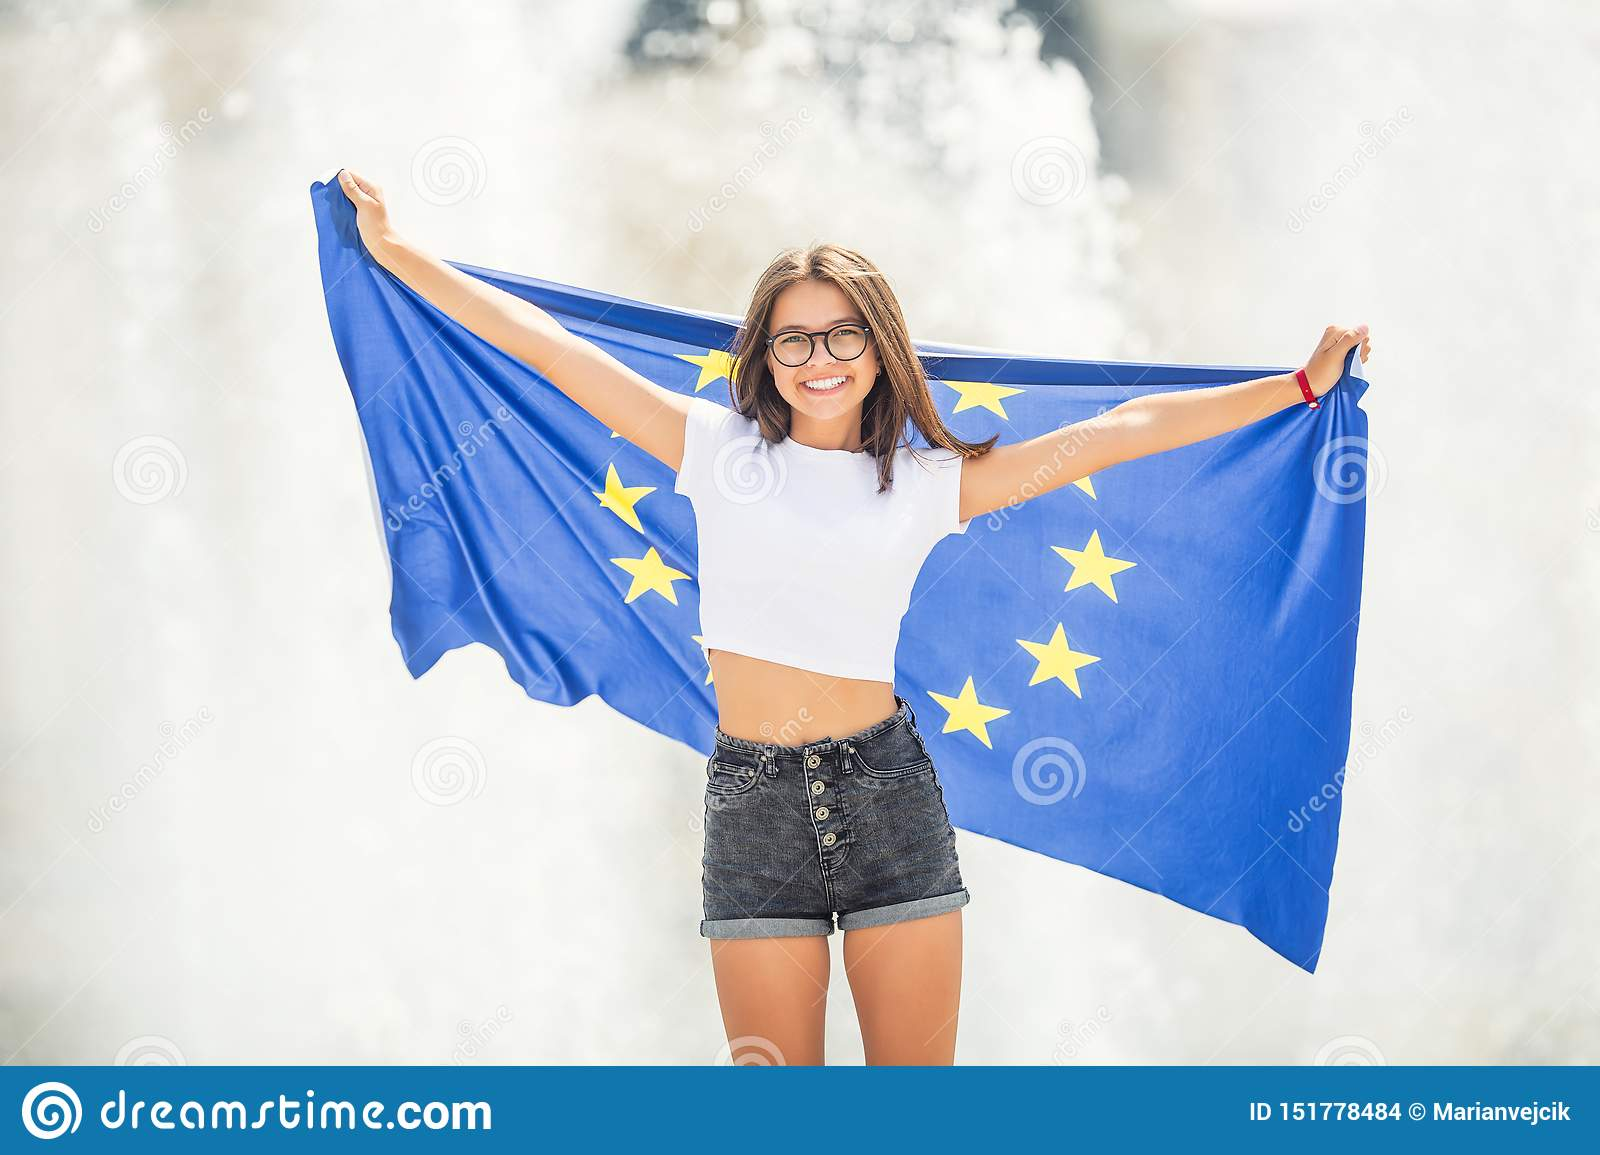 Cute happy young girl with the flag of the European Union in front of a historic building somewhere in europe